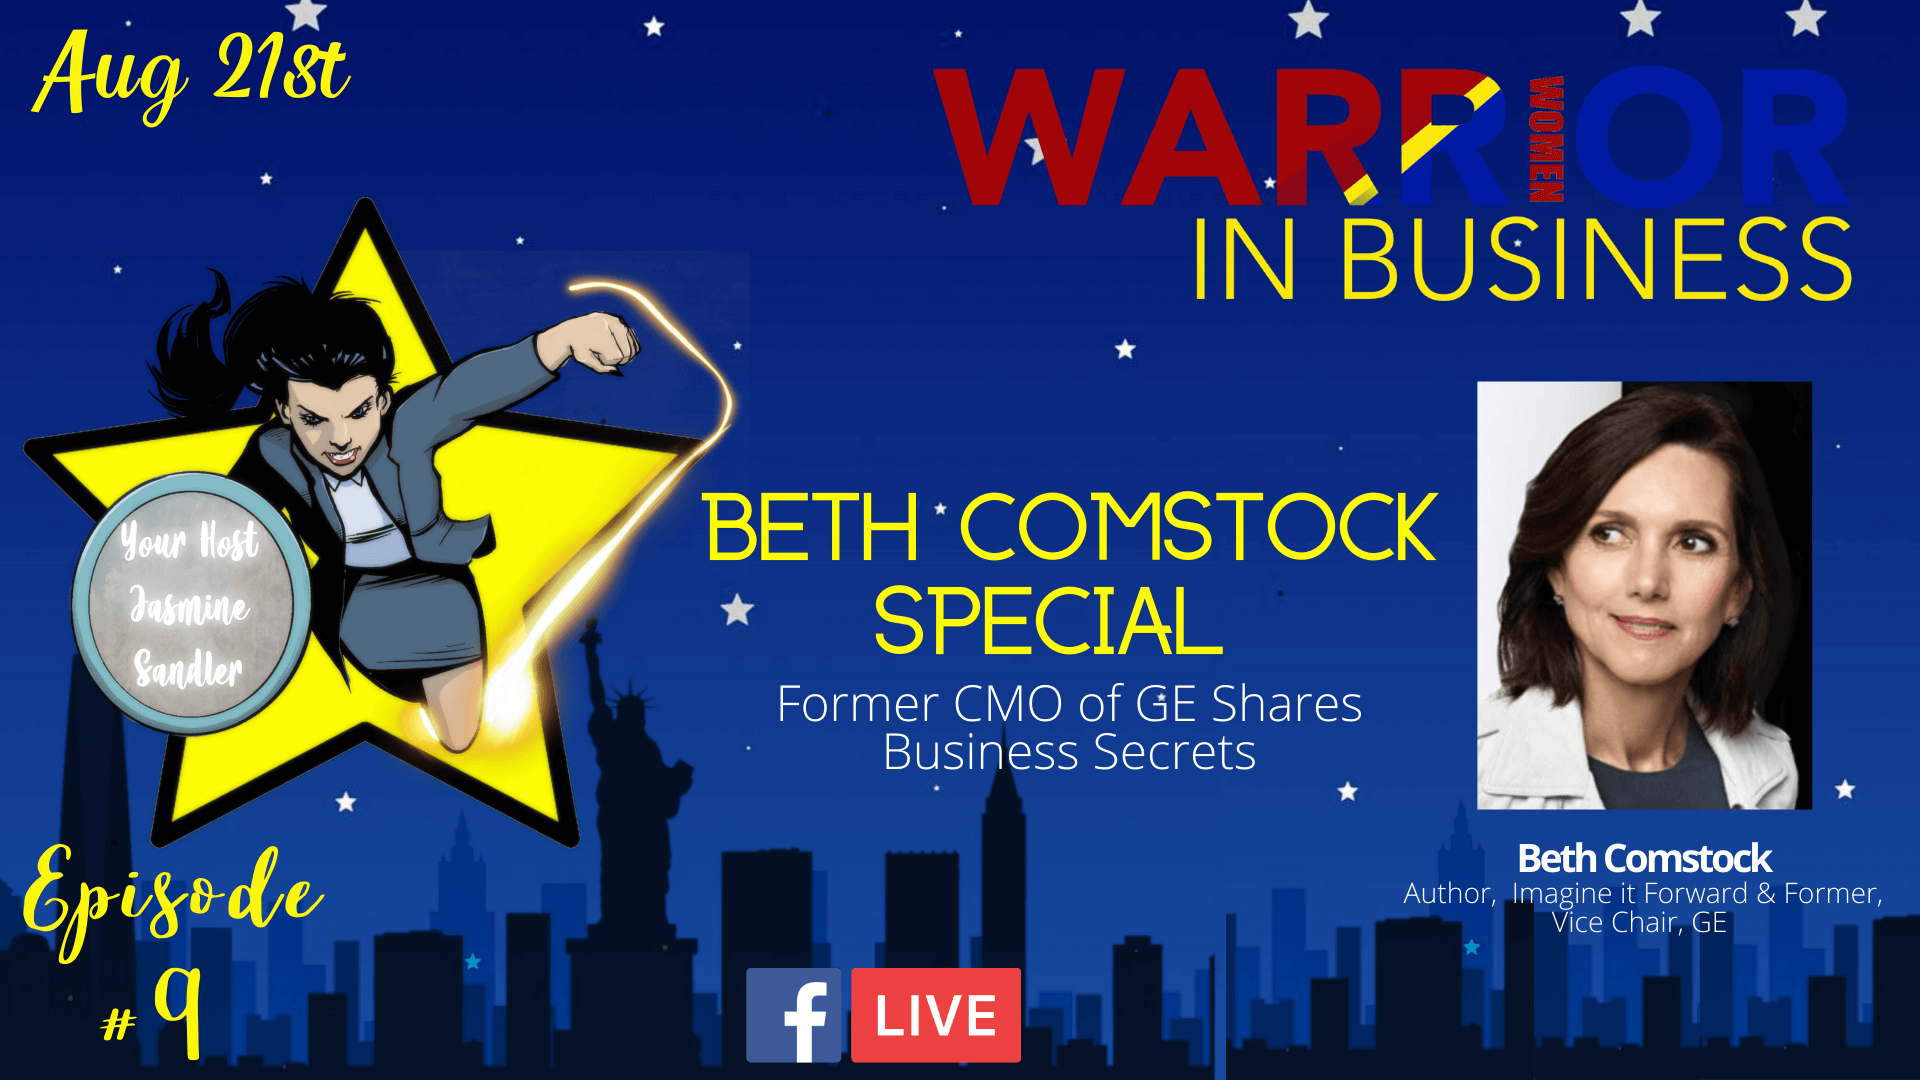 Episode 9 – Beth Comstock Special: Former CMO Of GE Shares Business Secrets